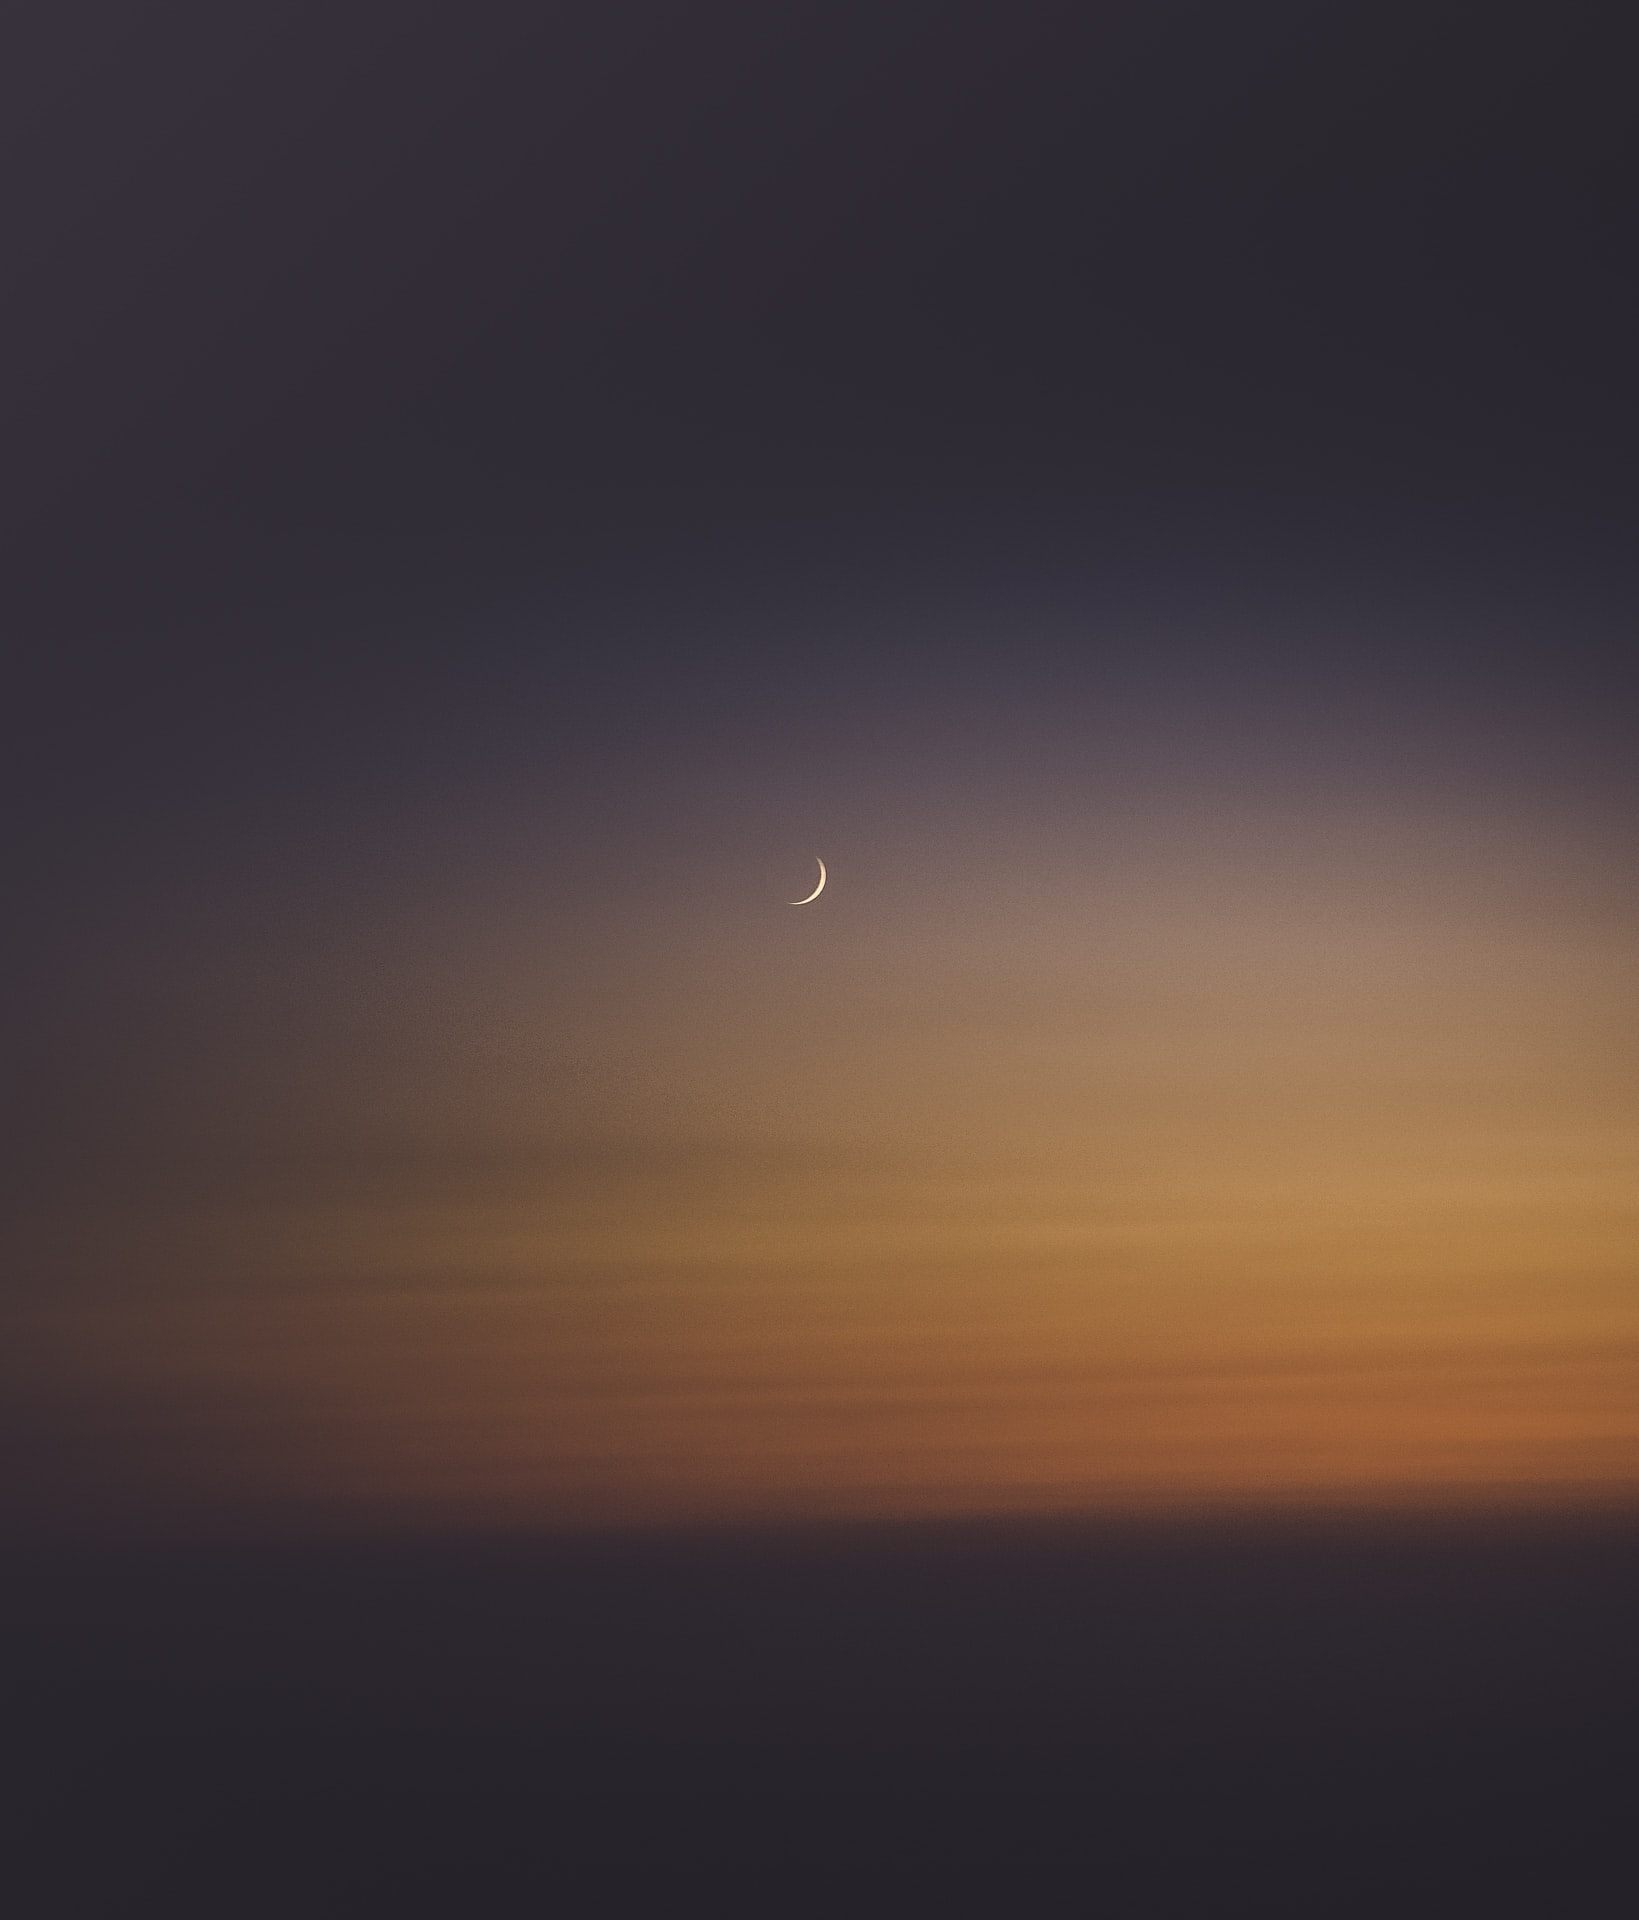 crescent moon during sunset